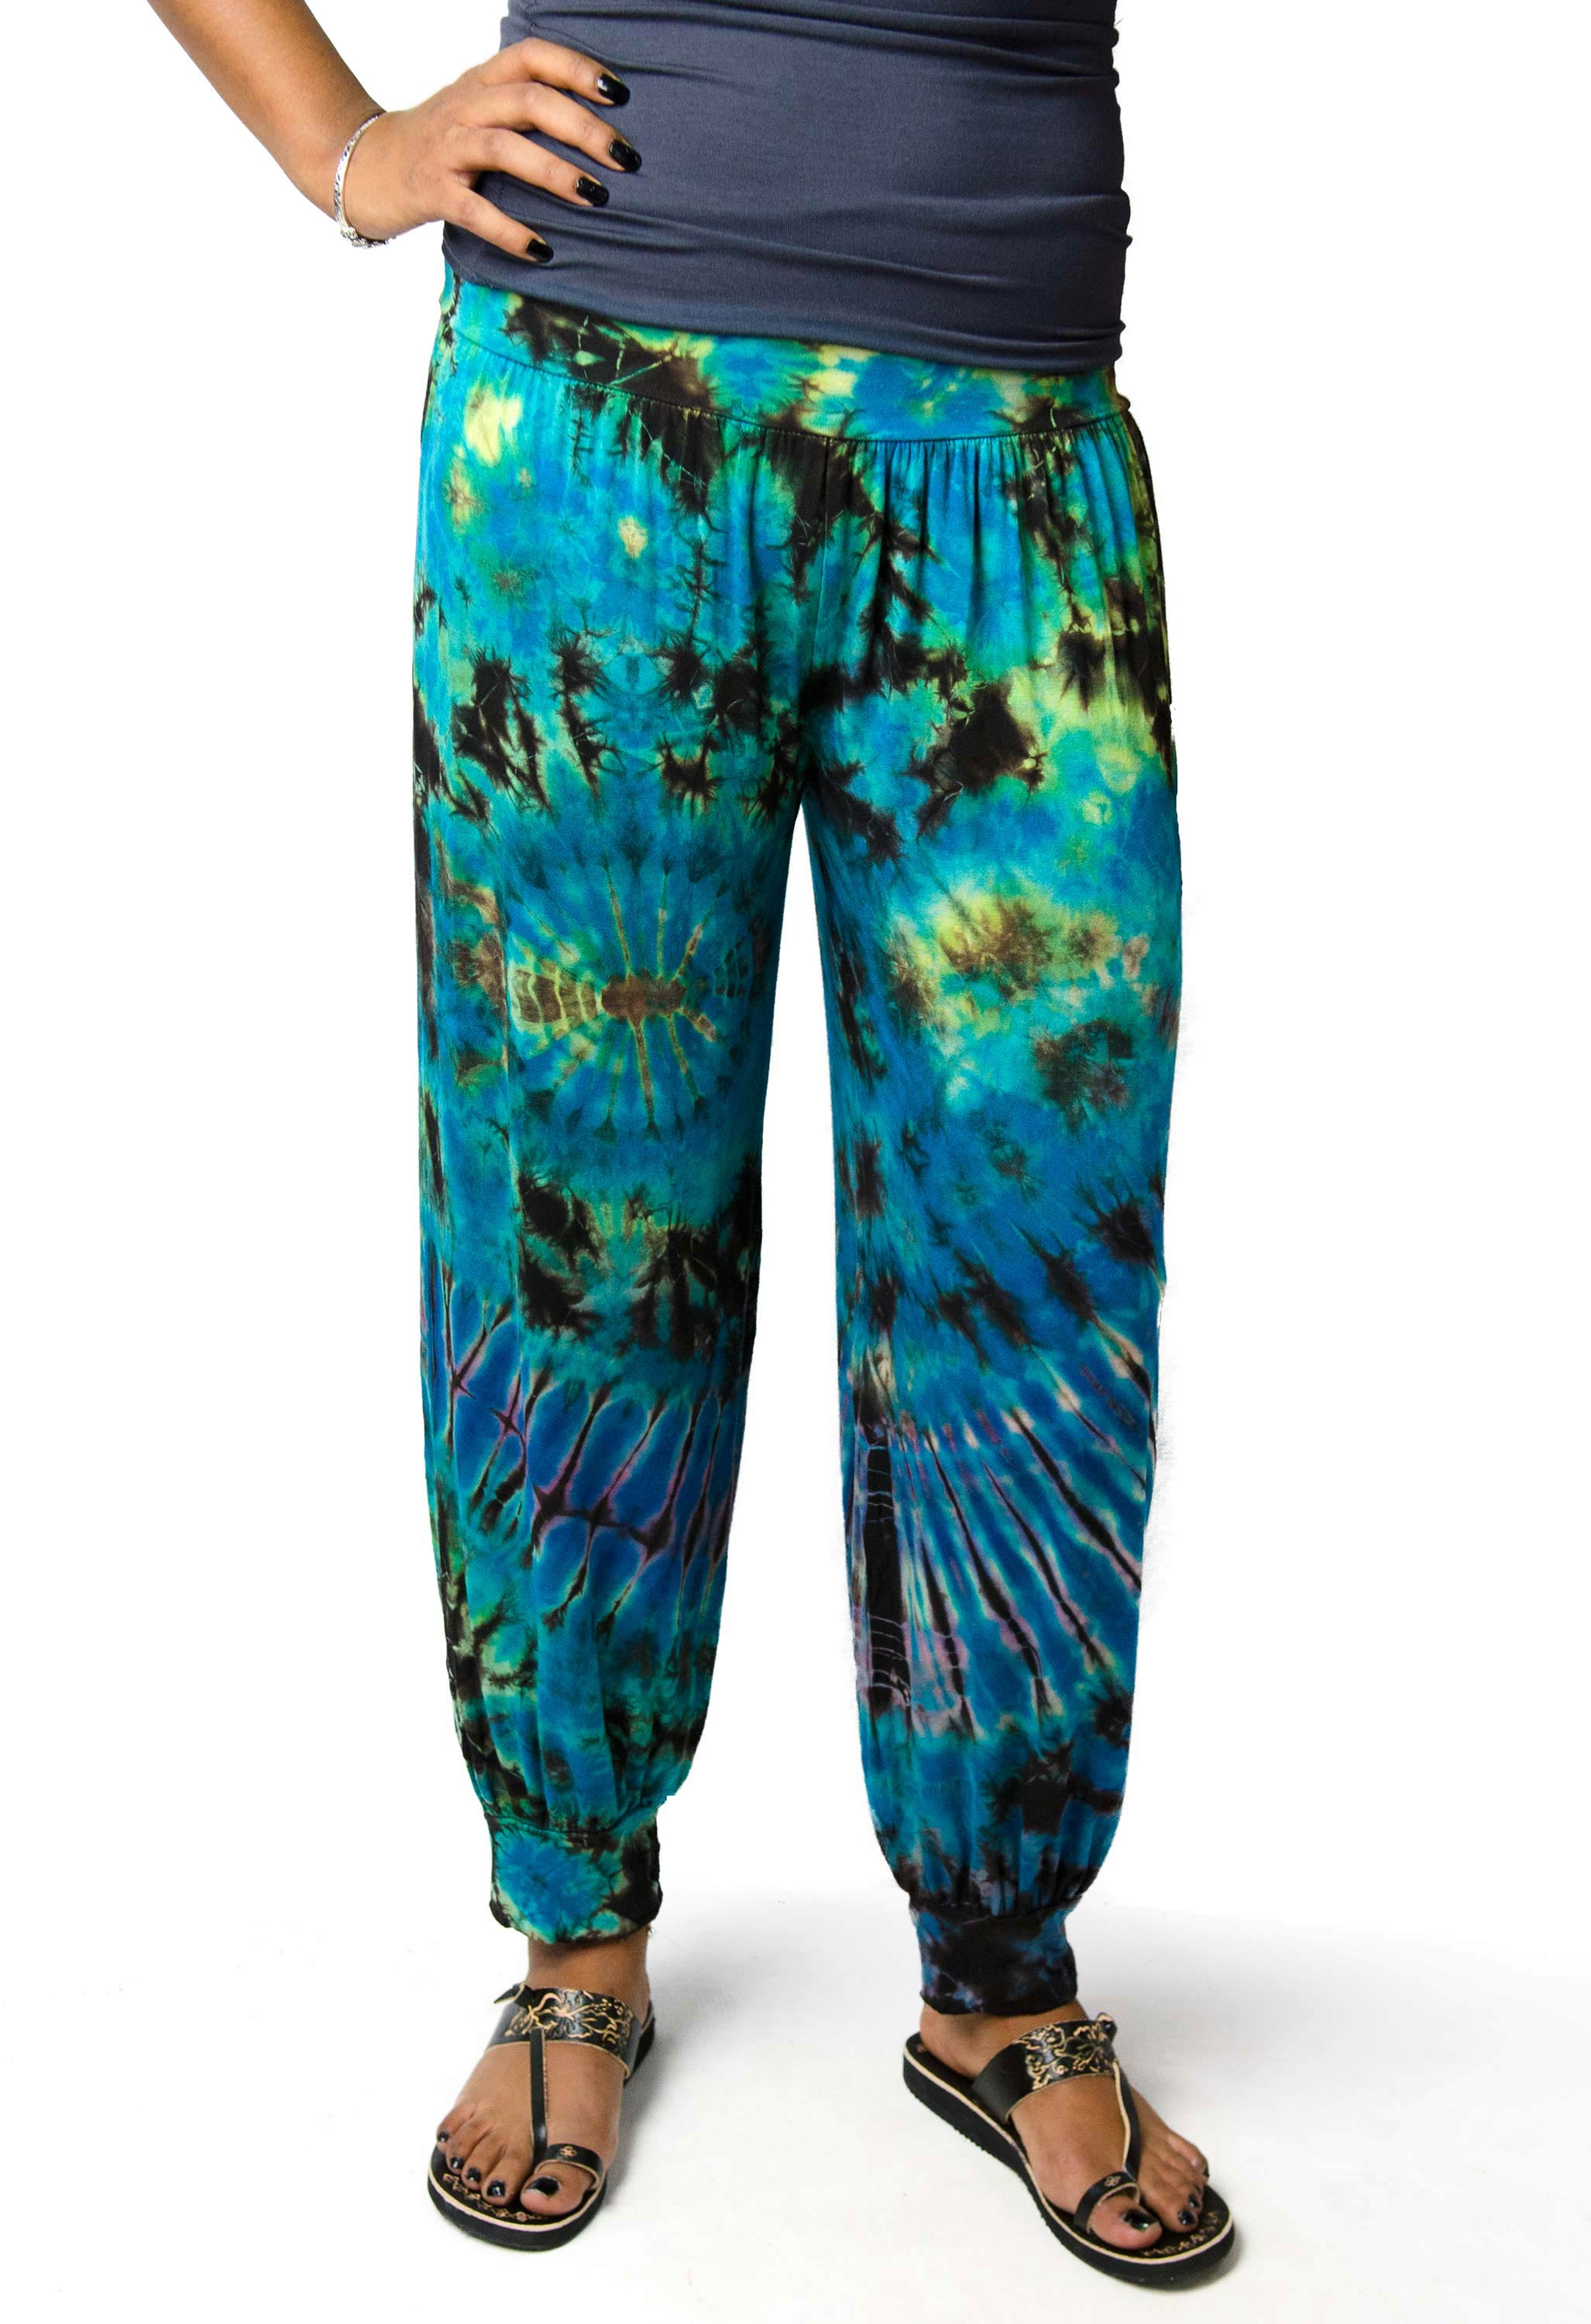 Harem Pants Hand Painted Tie Dye, Blue-Green  - 1914T